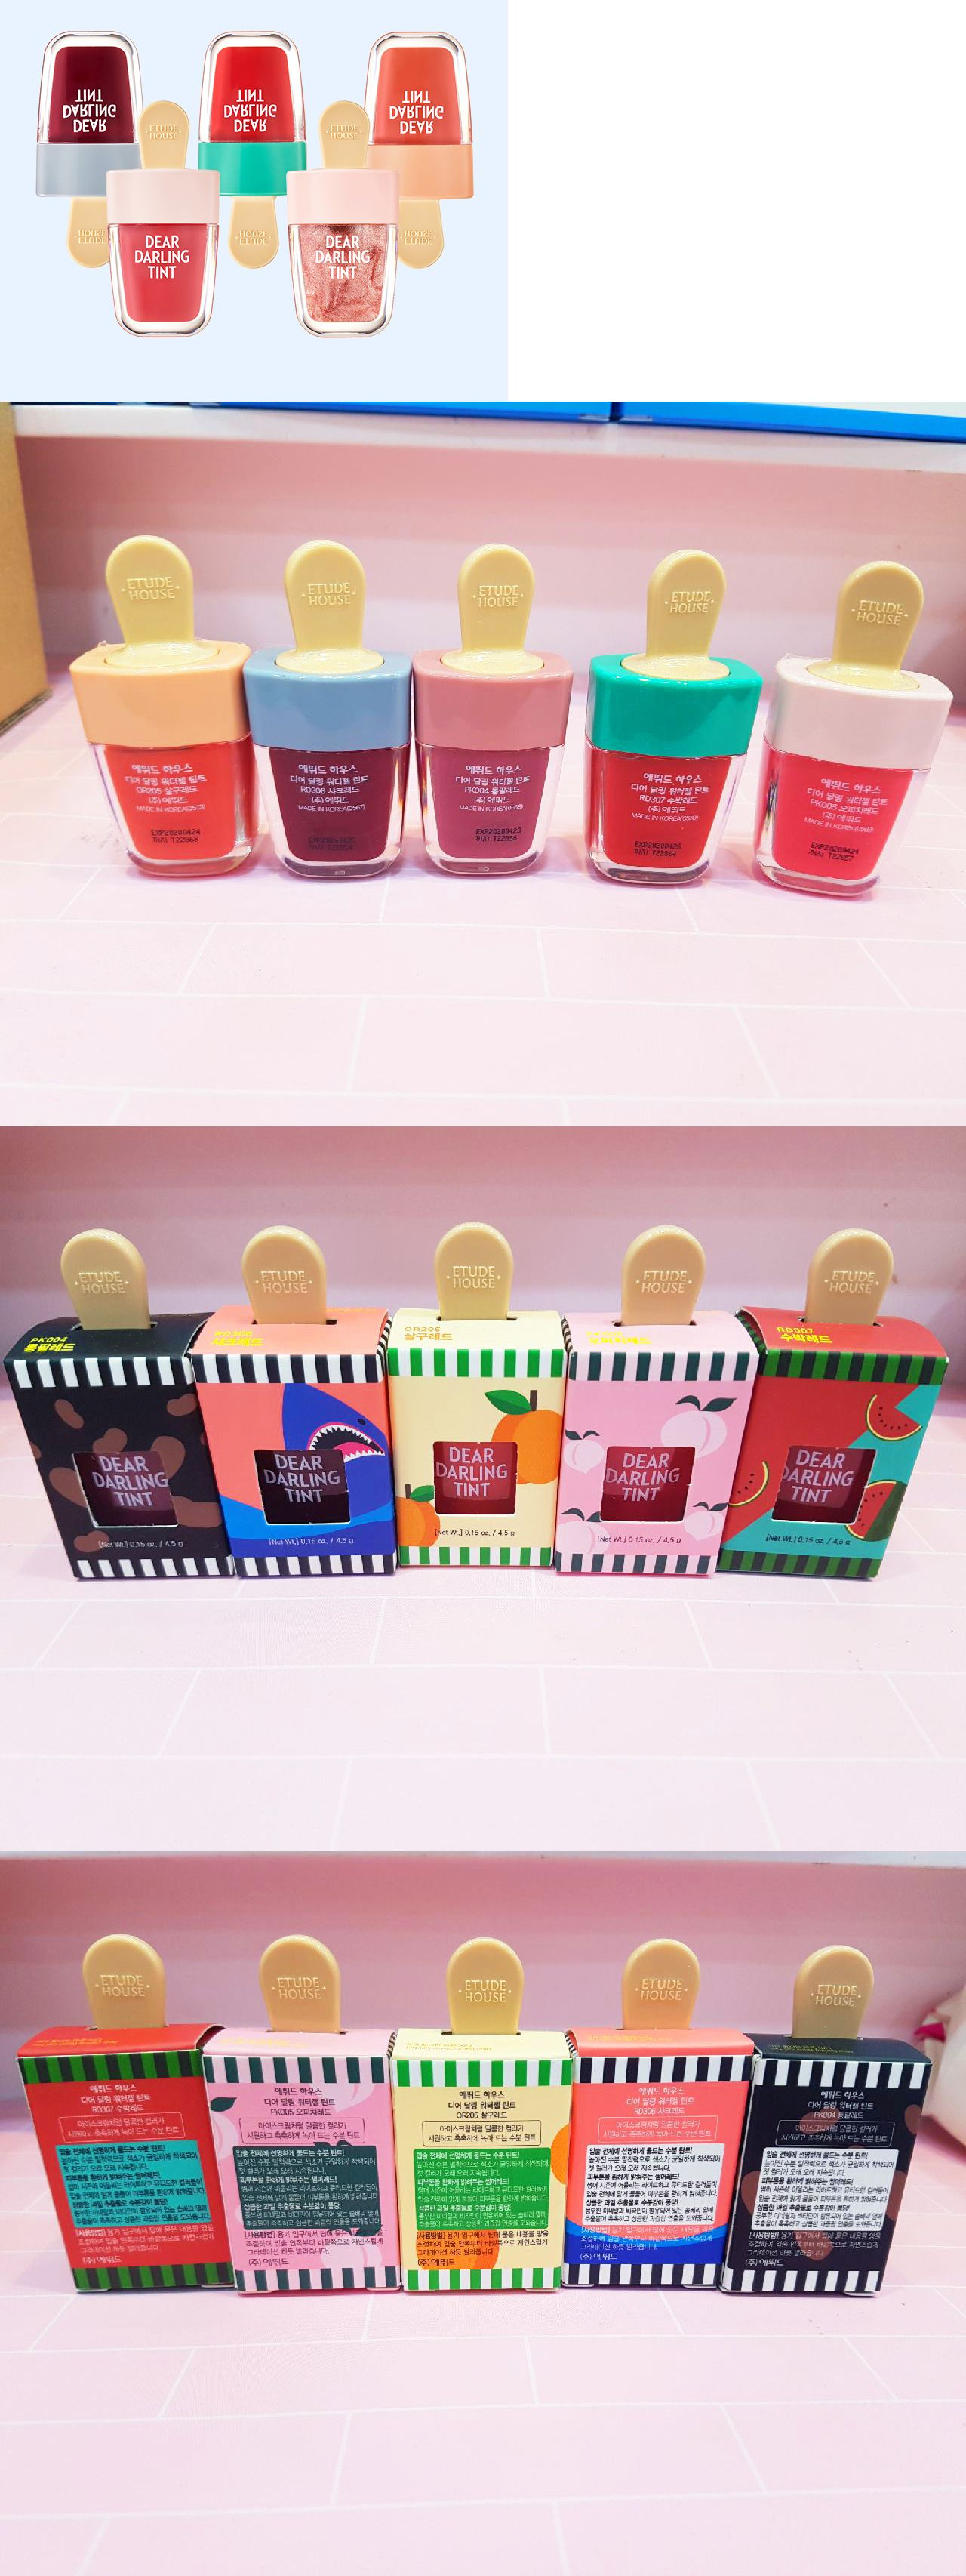 Lip Stain Etude House Dear Darling Water Gel Ice Cream Tint Summer Edition Limited